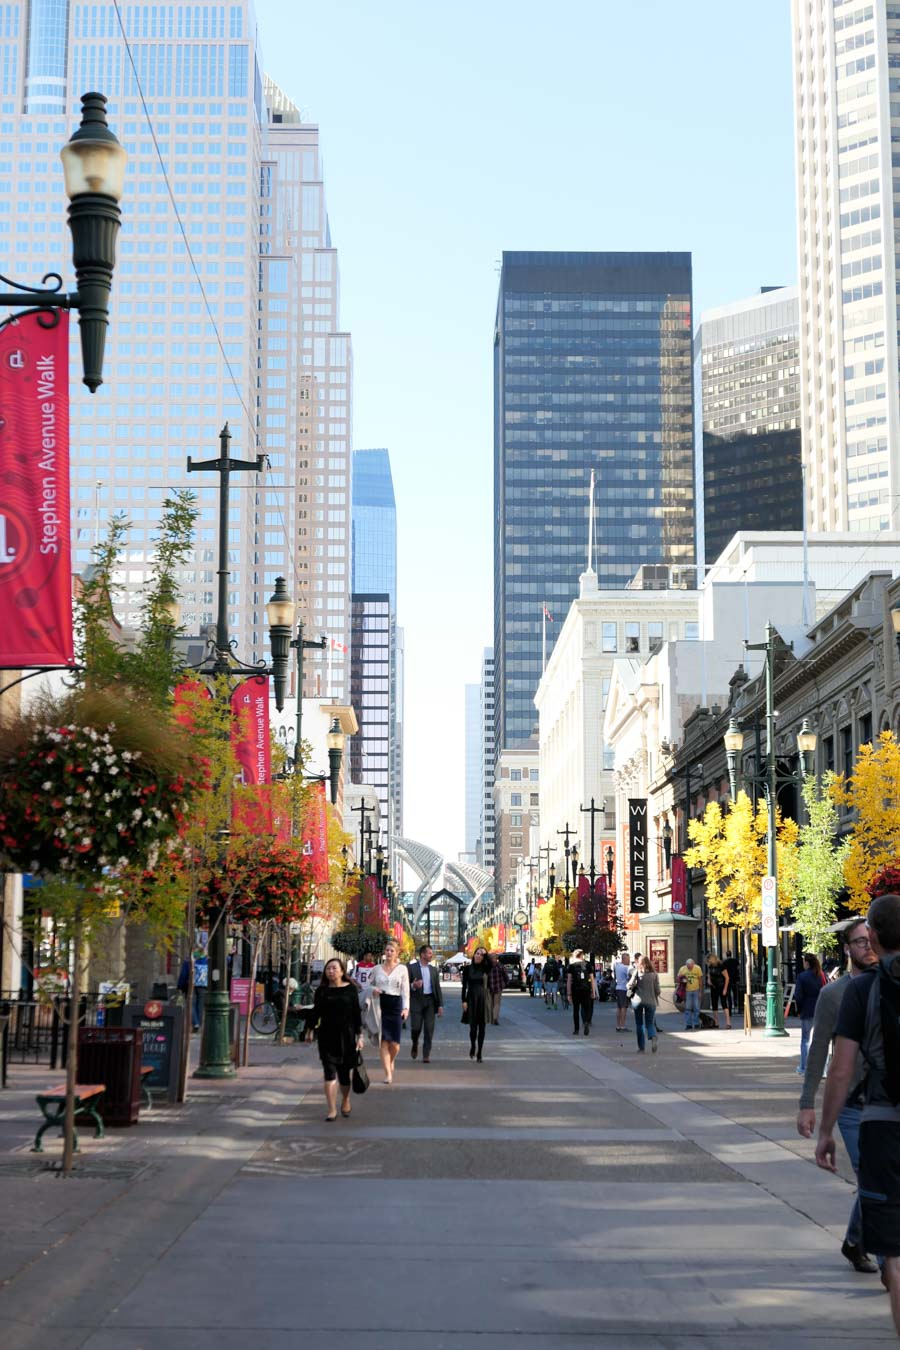 Looking Down Stephen Avenue Walk - Sunny Day with Pedestrians